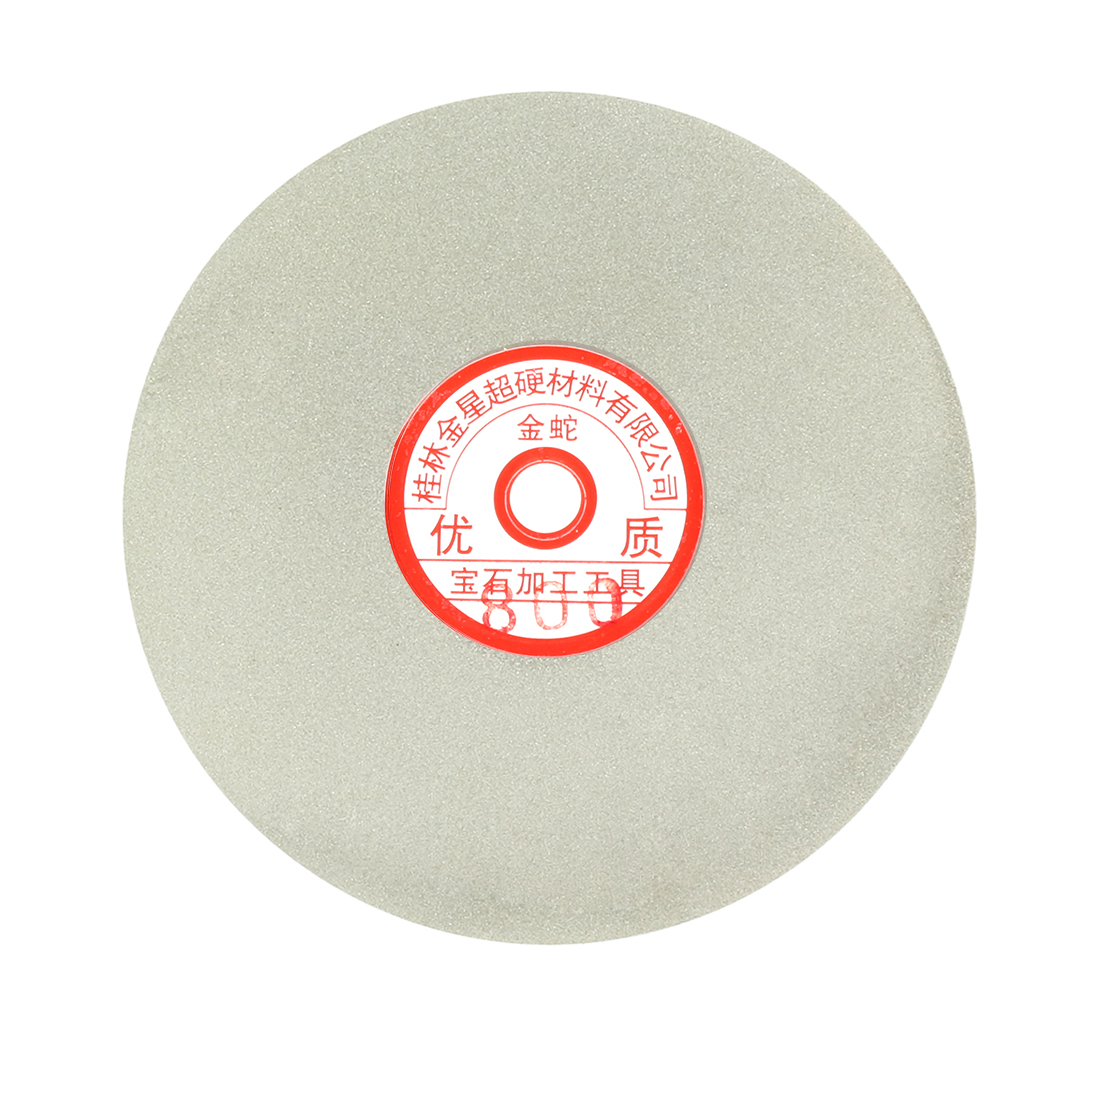 6-inch Grit 800 Diamond Coated Flat Lap Wheel Grinding Sanding Polishing Disc